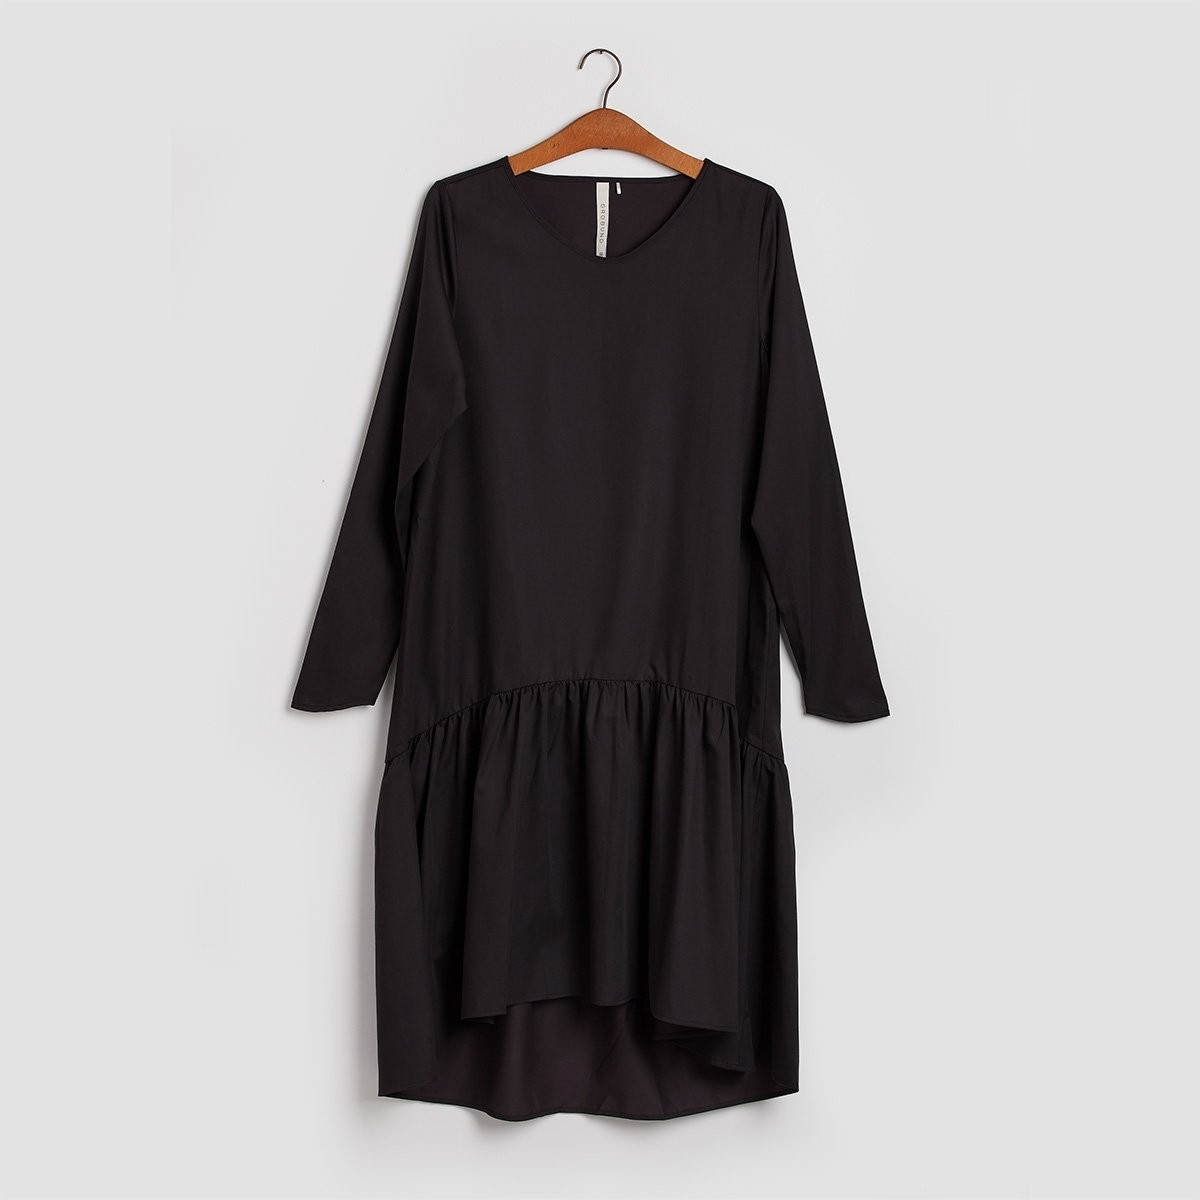 Grobund 0701 Solaima Dress Black-31